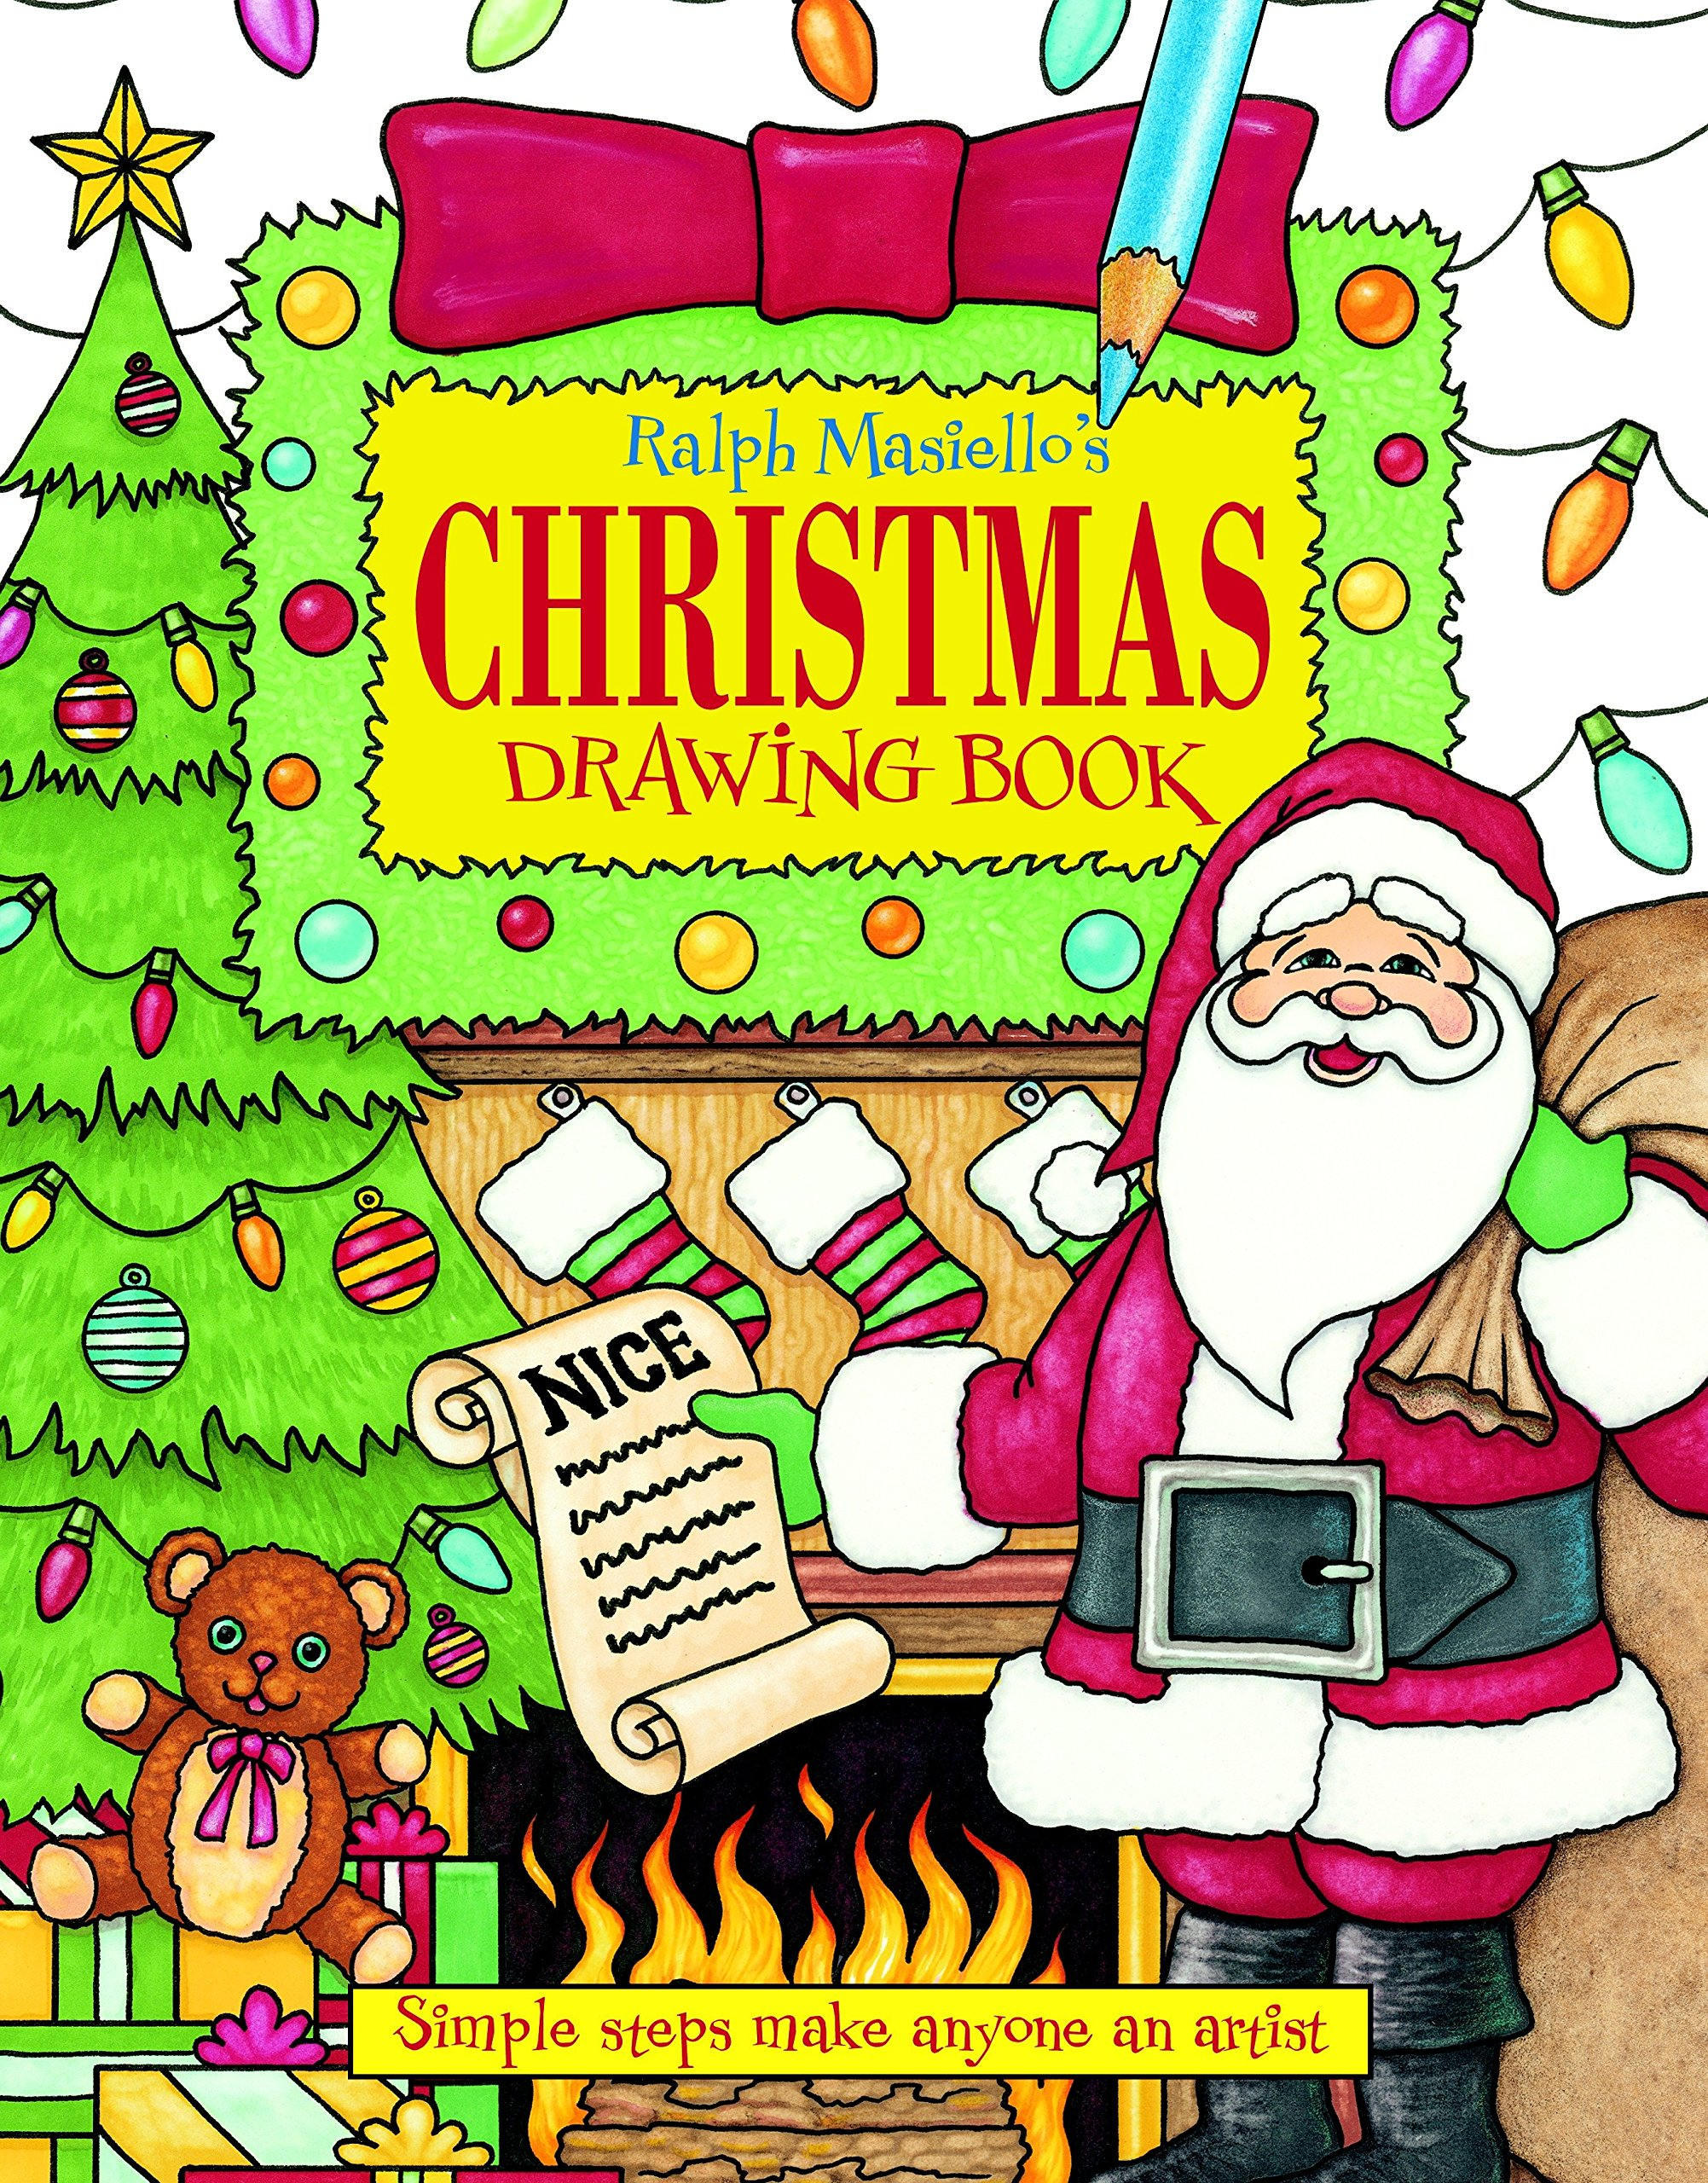 Christmas Pictures To Draw.Ralph Masiello S Christmas Drawing Book Ralph Masiello S